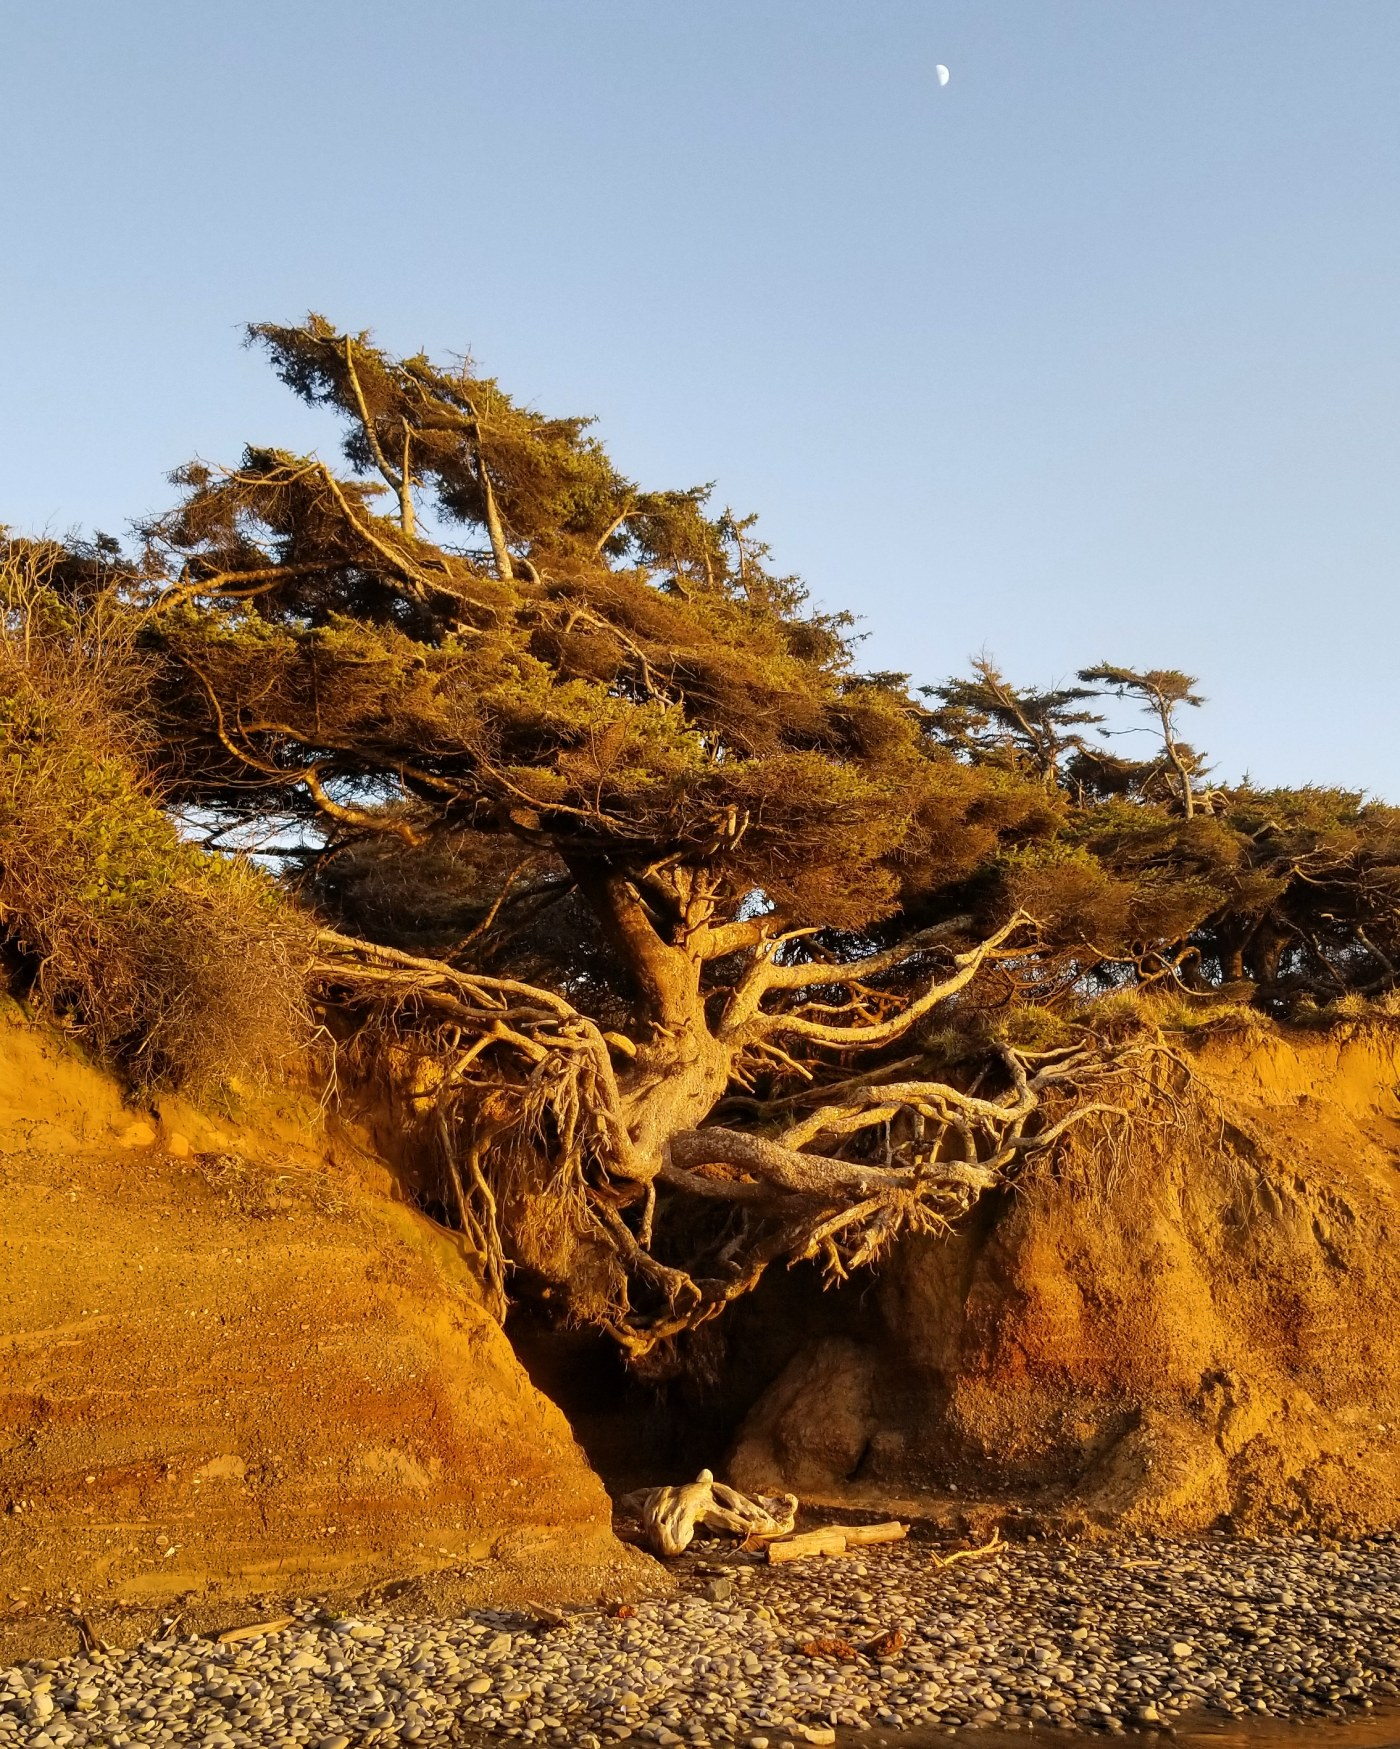 A coastal spruce tree spans a cave, the roots barely holding on to either side. There is green growth on the tree. It is sunset and the image is in golden hues with a blue sky and a partial moon on the upper right.